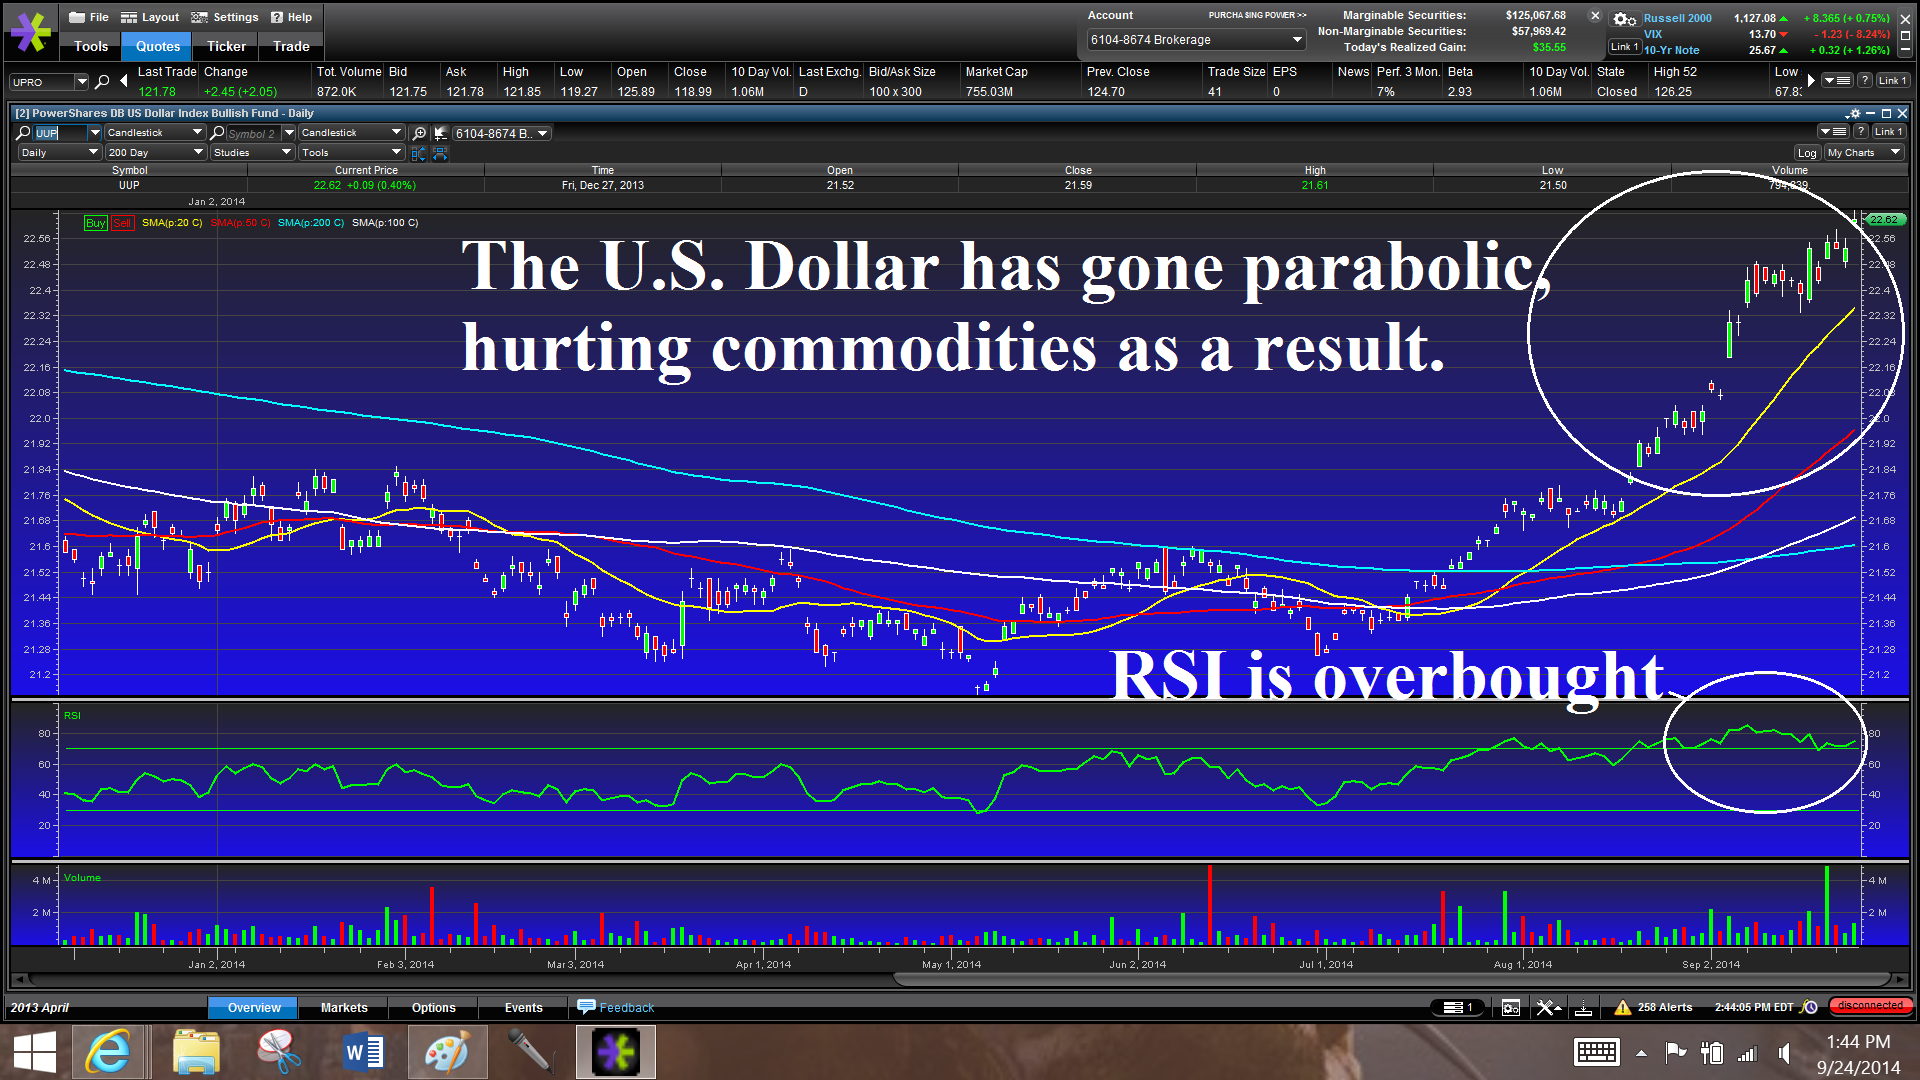 A strong dollar hurts commodities as well as U.S. companies who derive their profits from overseas.